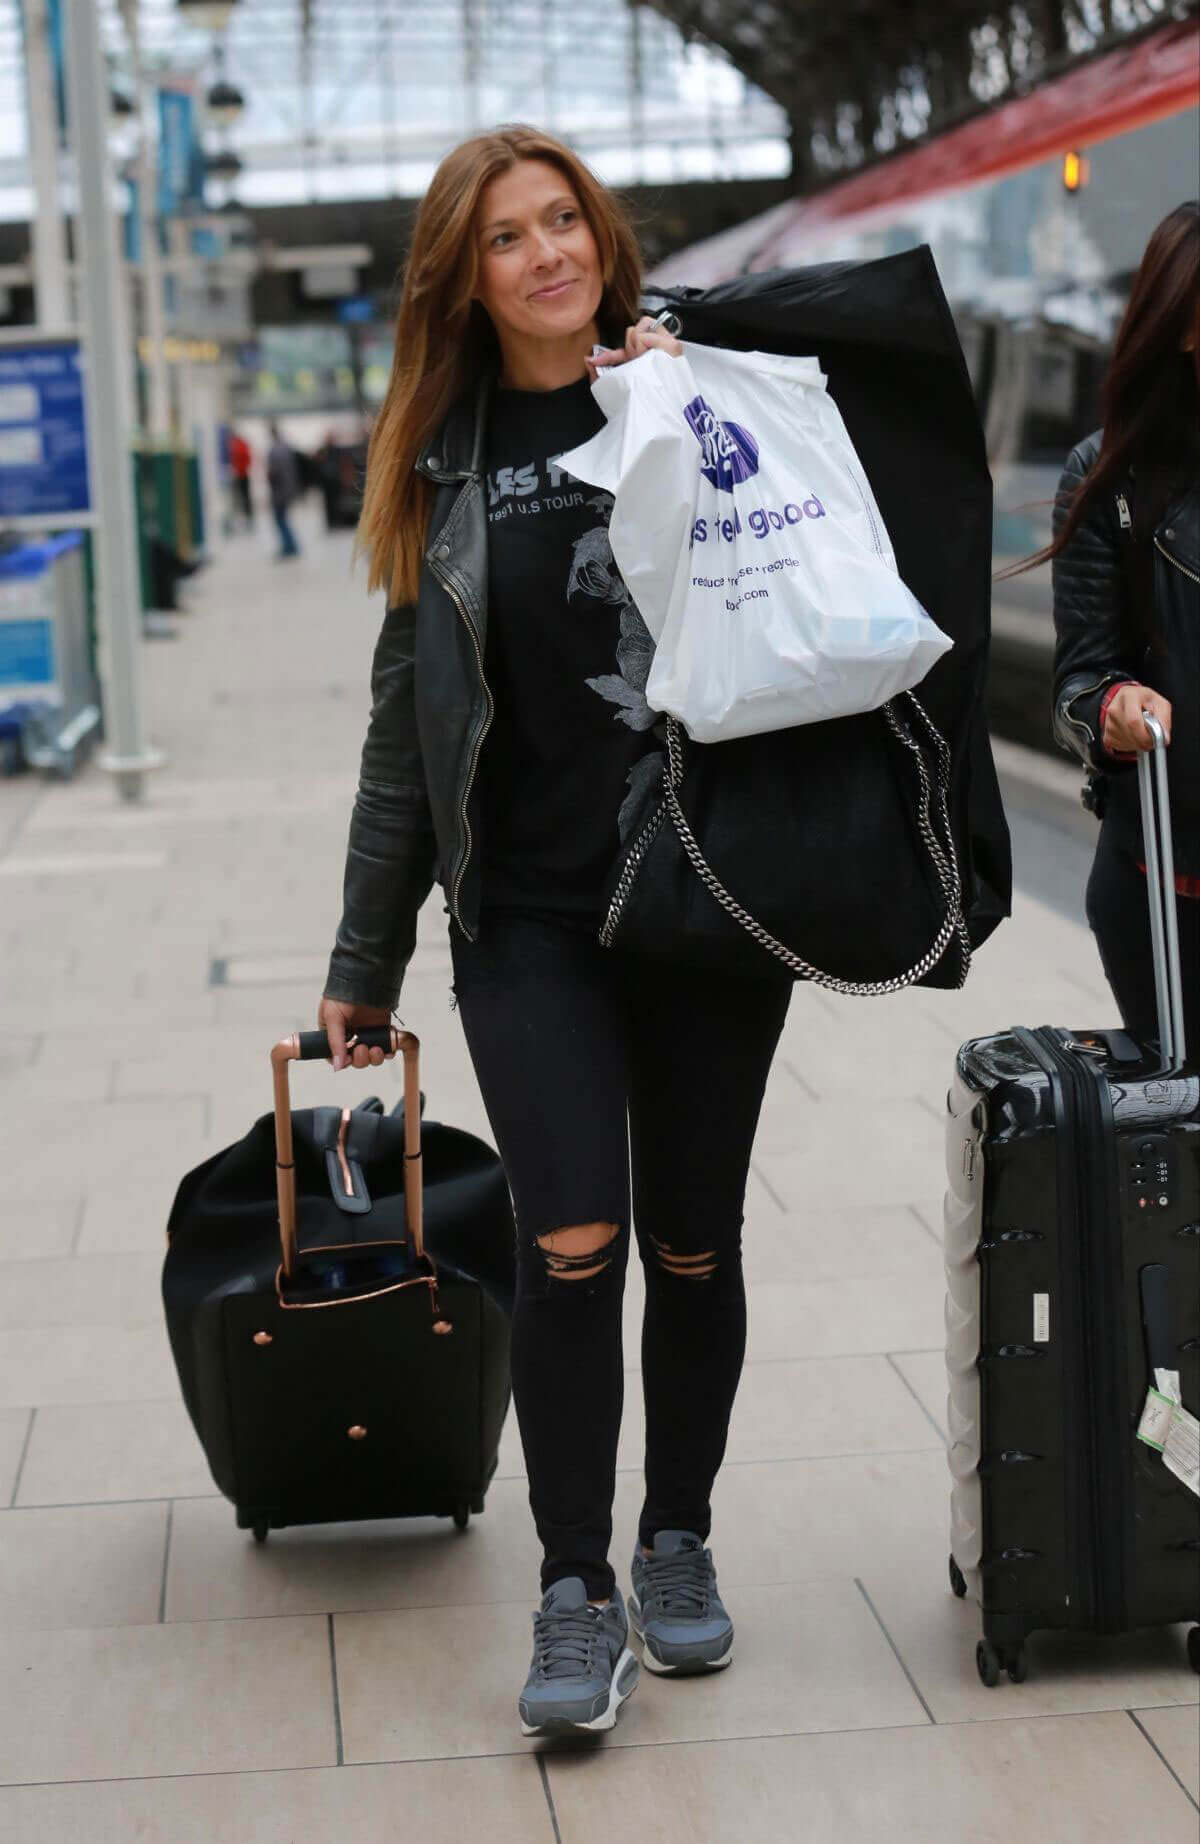 Kym Marsh, Julia Goulding and Bhavna Limbachia Stills at Train Station in Manchester